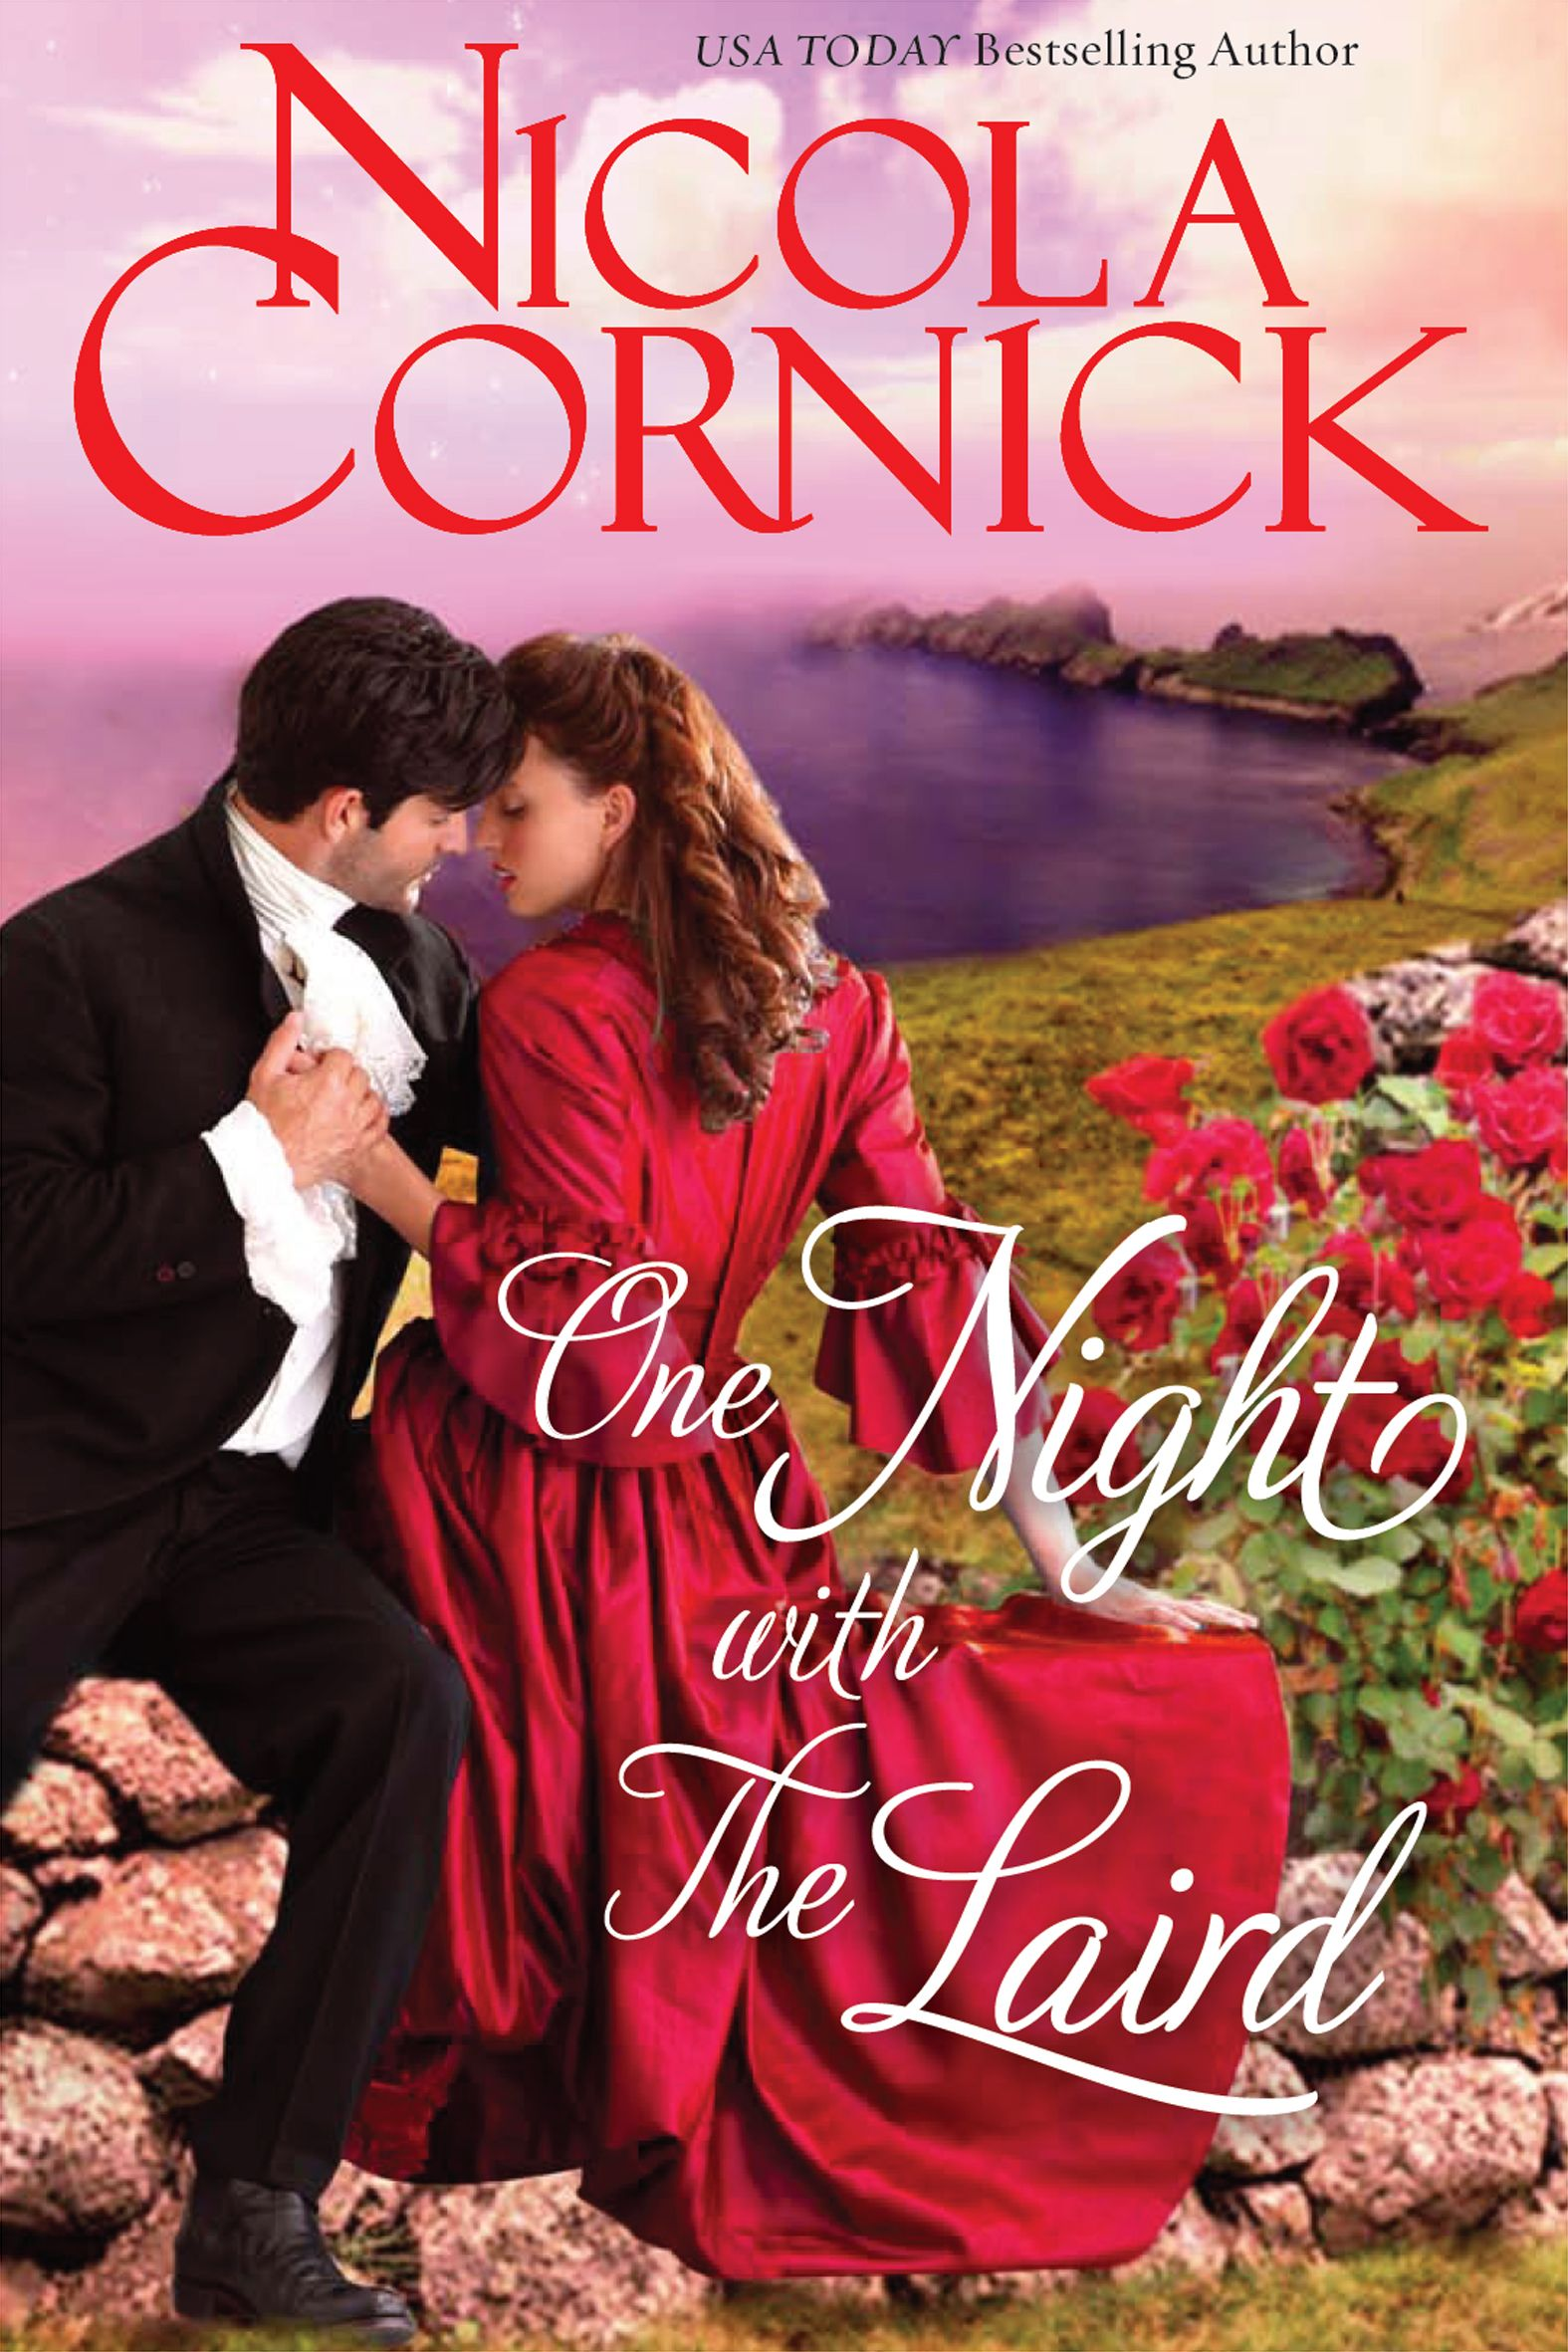 Book 2 in the Trilogy is Mairi's story - One Night with the Laird November 2013 | Noches de amor, Libros, Leer